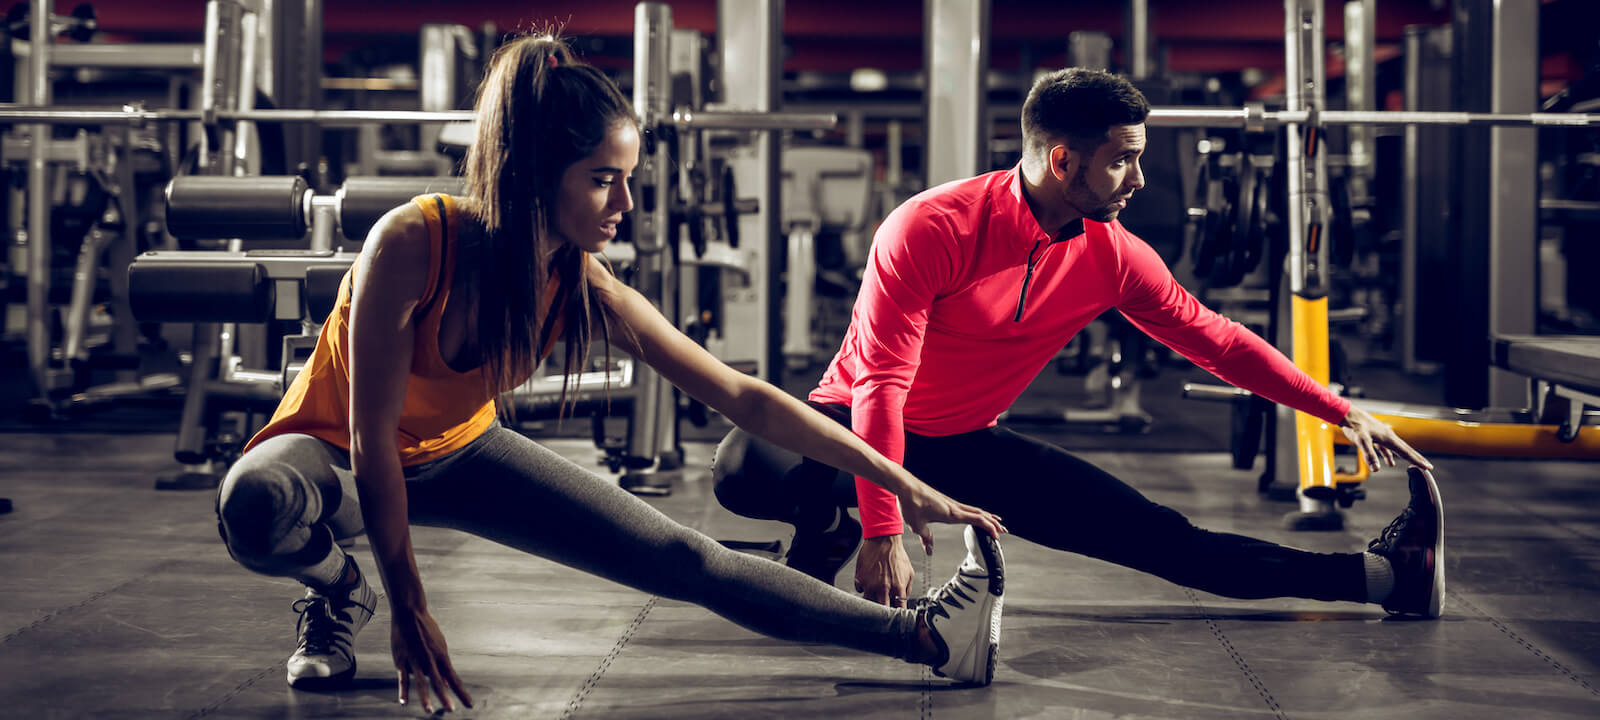 Personaltraining Fitness Coach workout